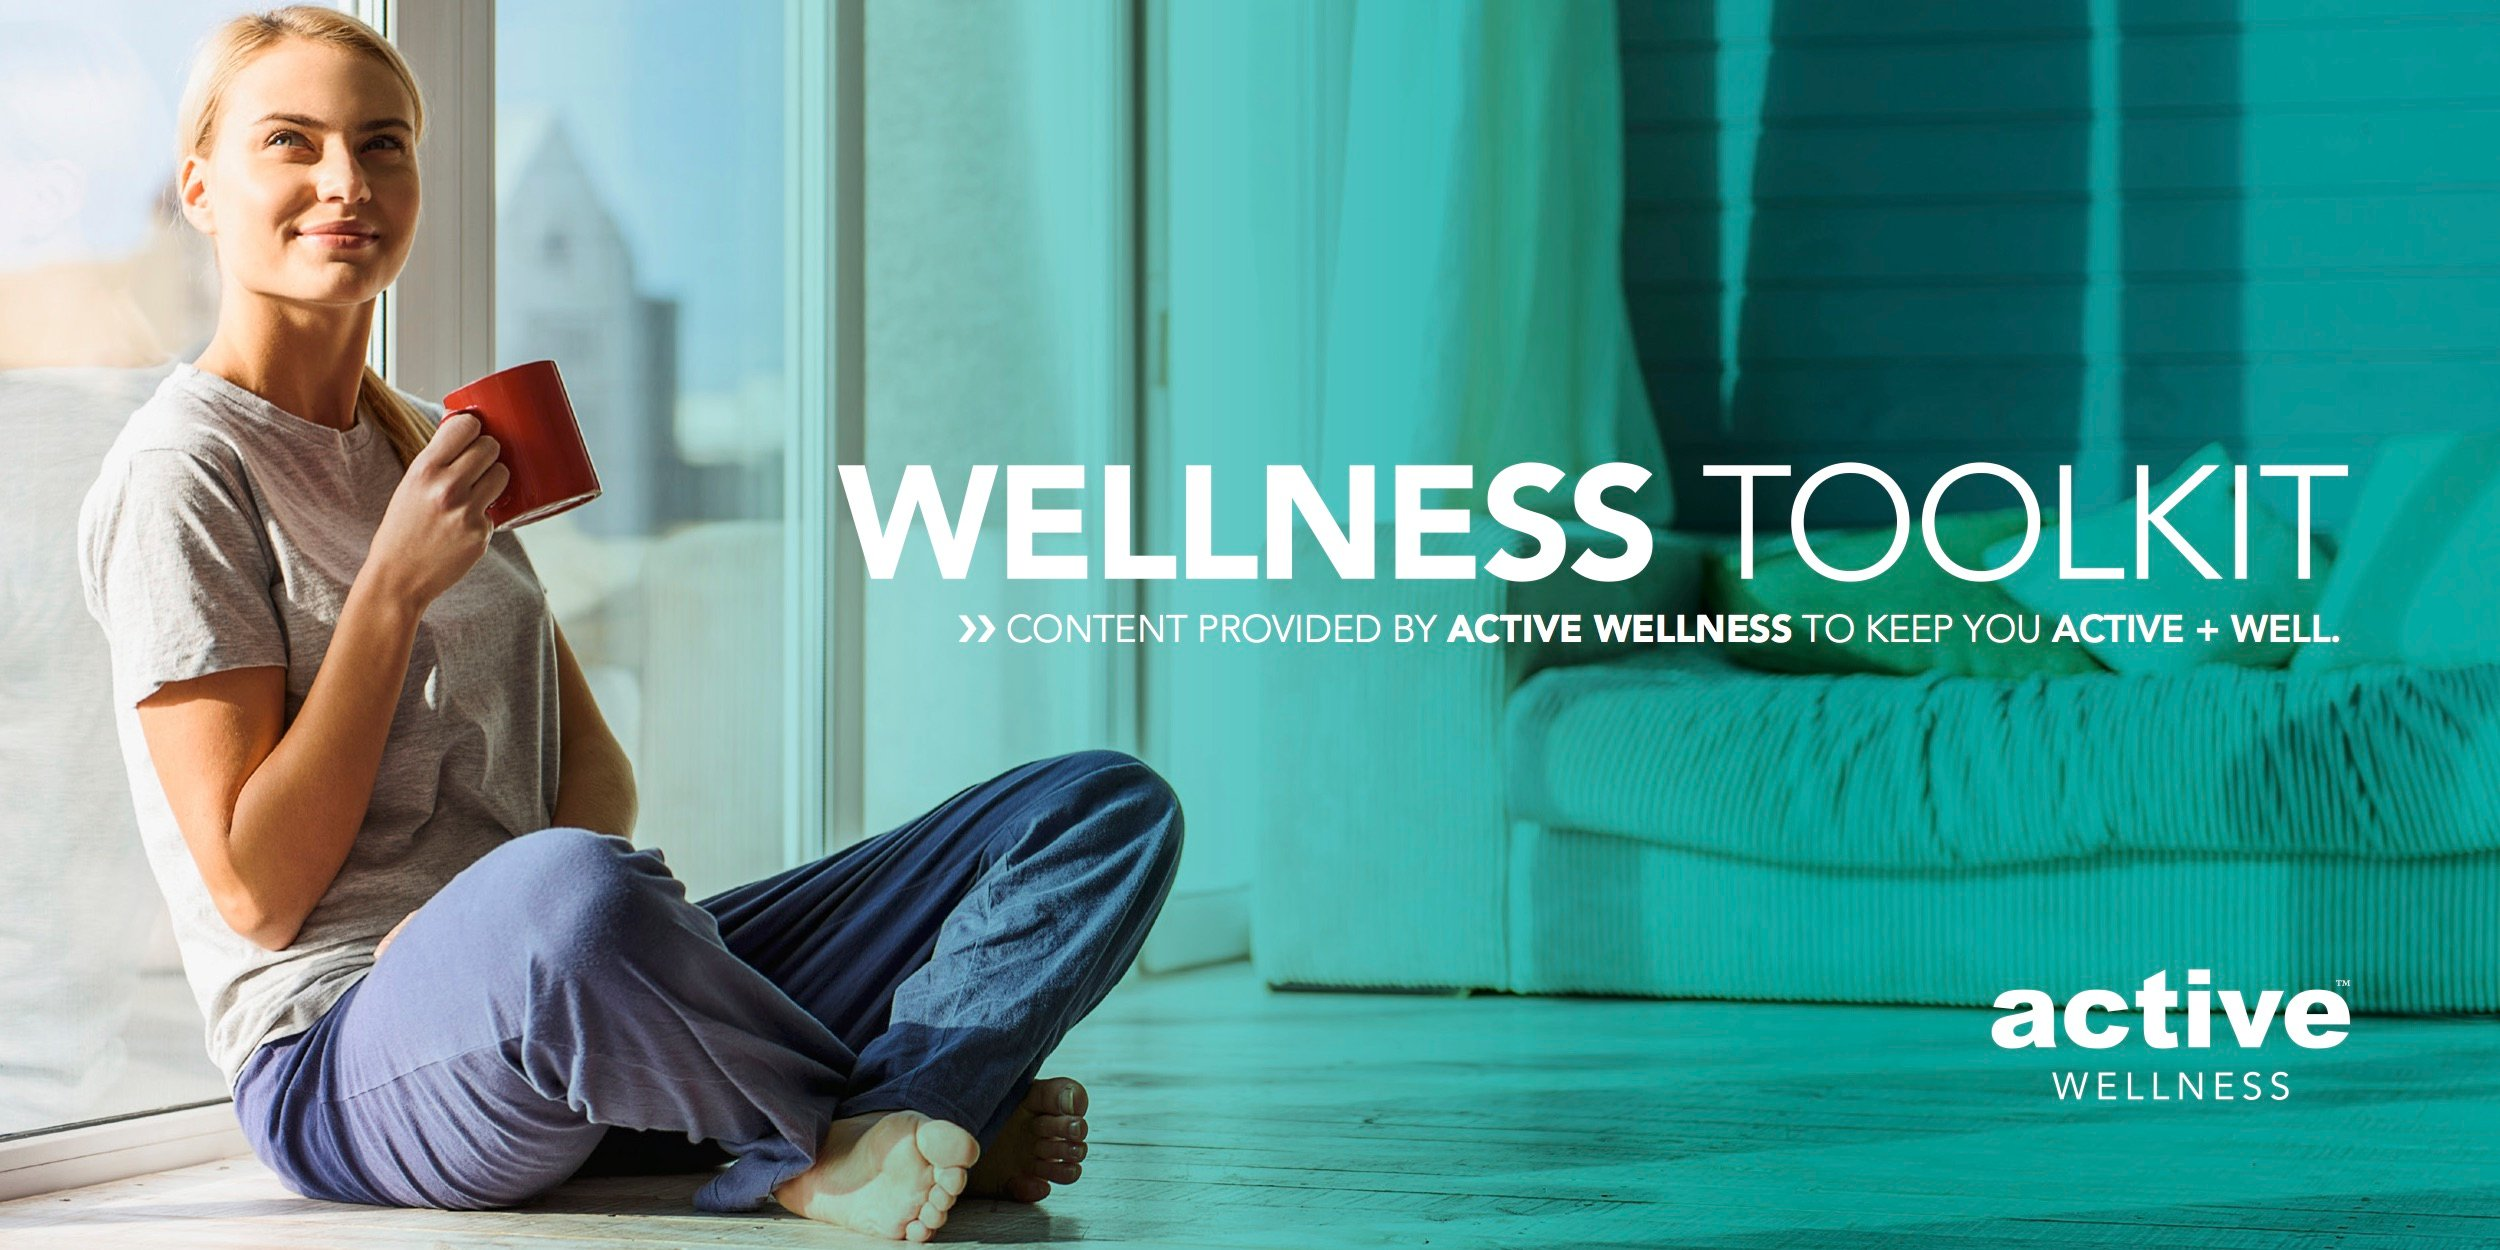 Active Wellness Toolkit